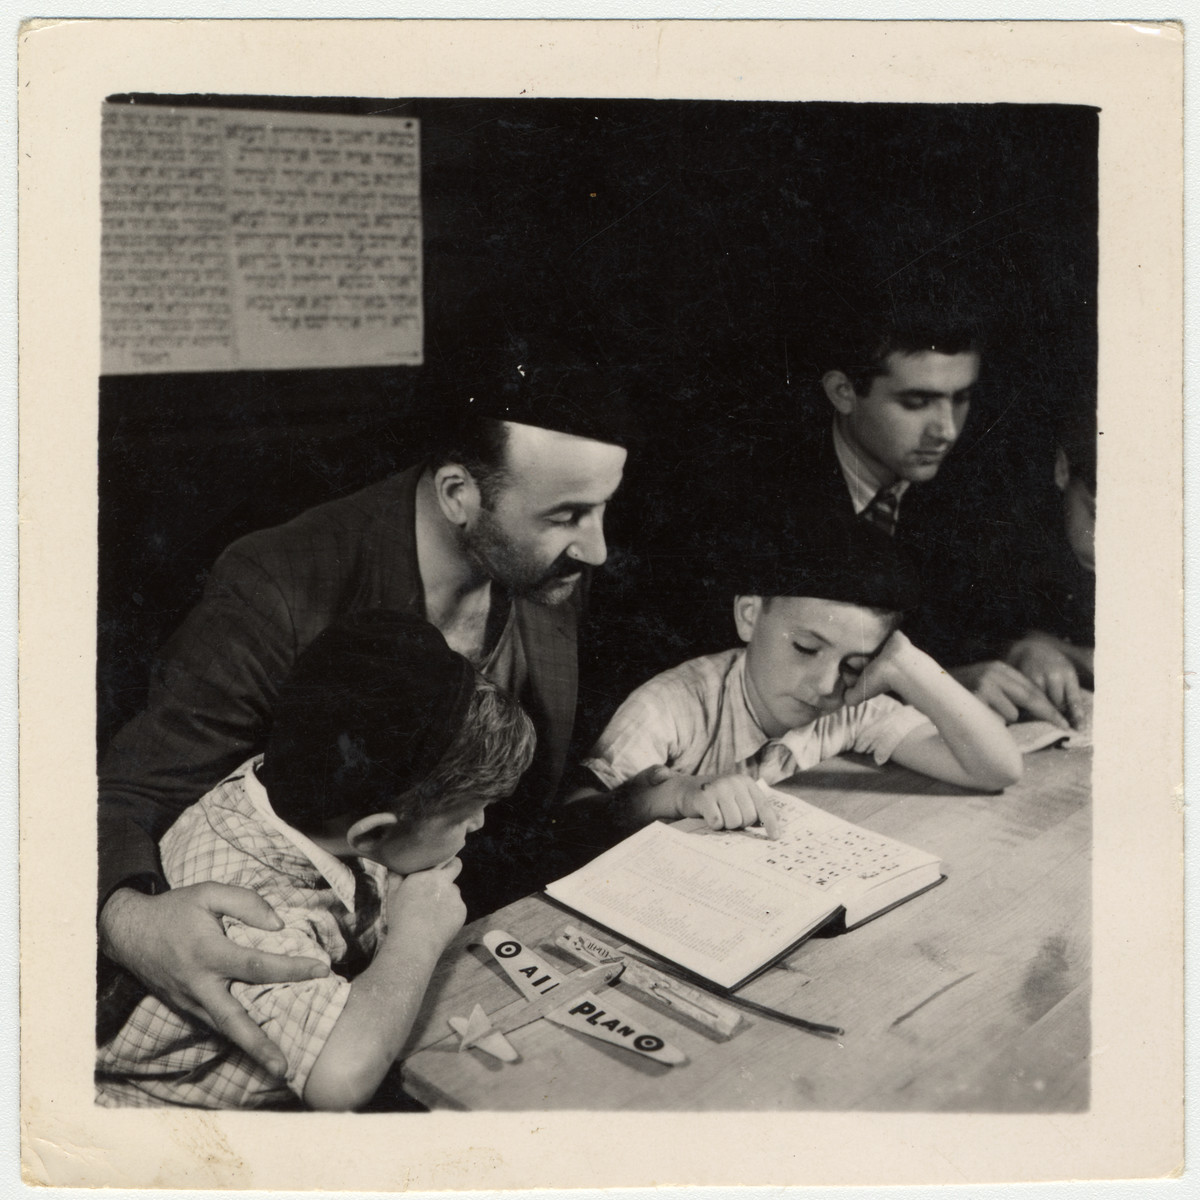 Buchenwald child survivor study a Hebrew text at an OSE (Oeuvre de Secours aux Enfants) children's home in France [either in Ambloy or Taverny].  Among those pictured is David Perelmutter who was born on January 8, 1937 in Lodz.